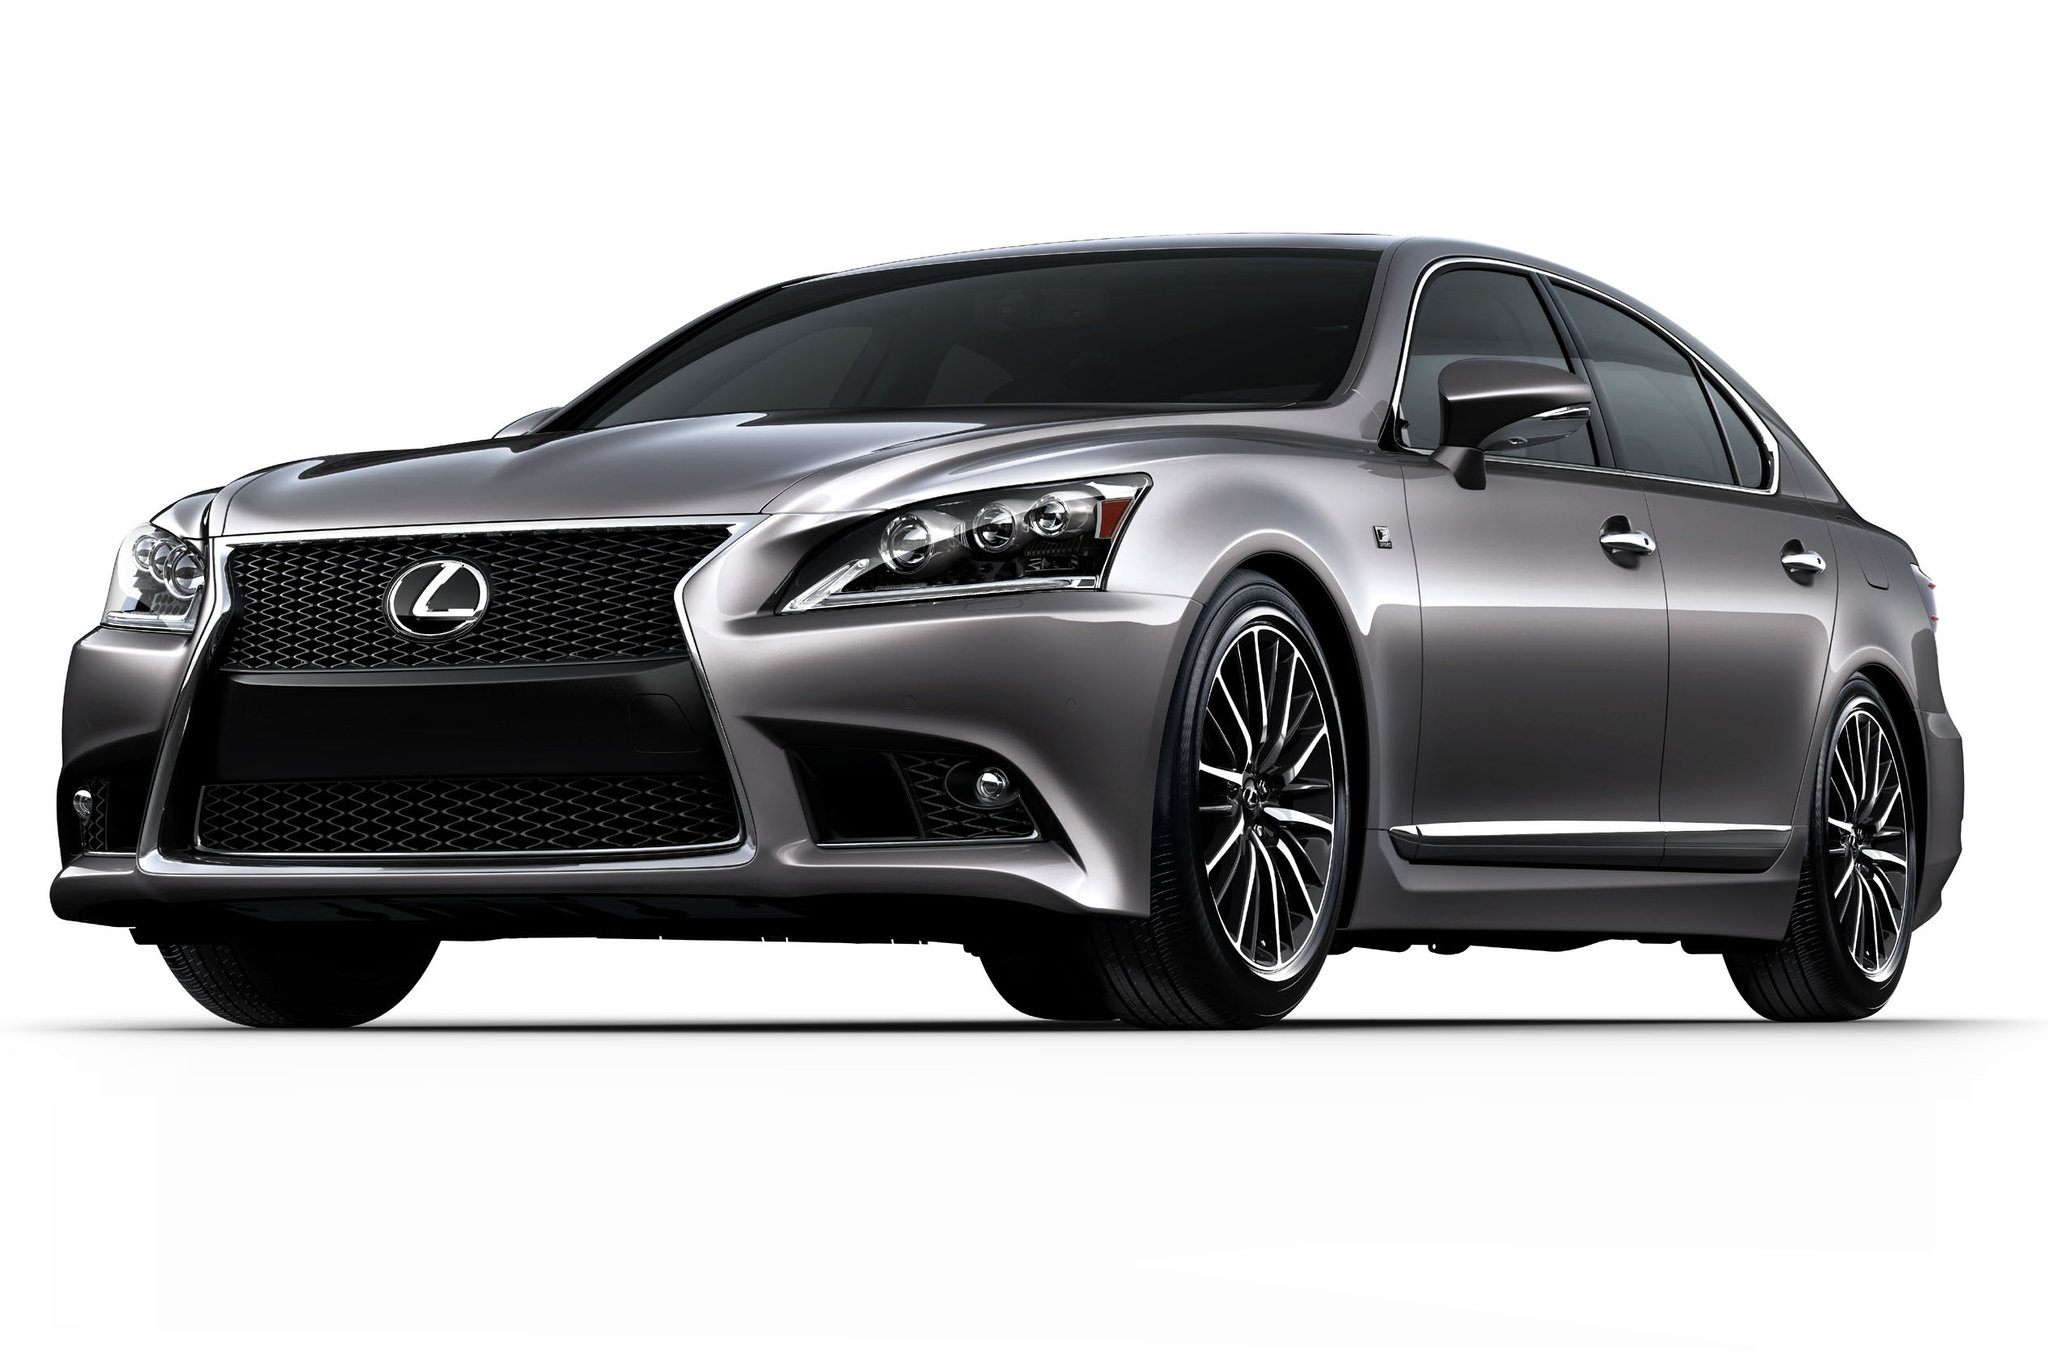 Toyota Moves to Revamp Its Lexus Line The New York Times